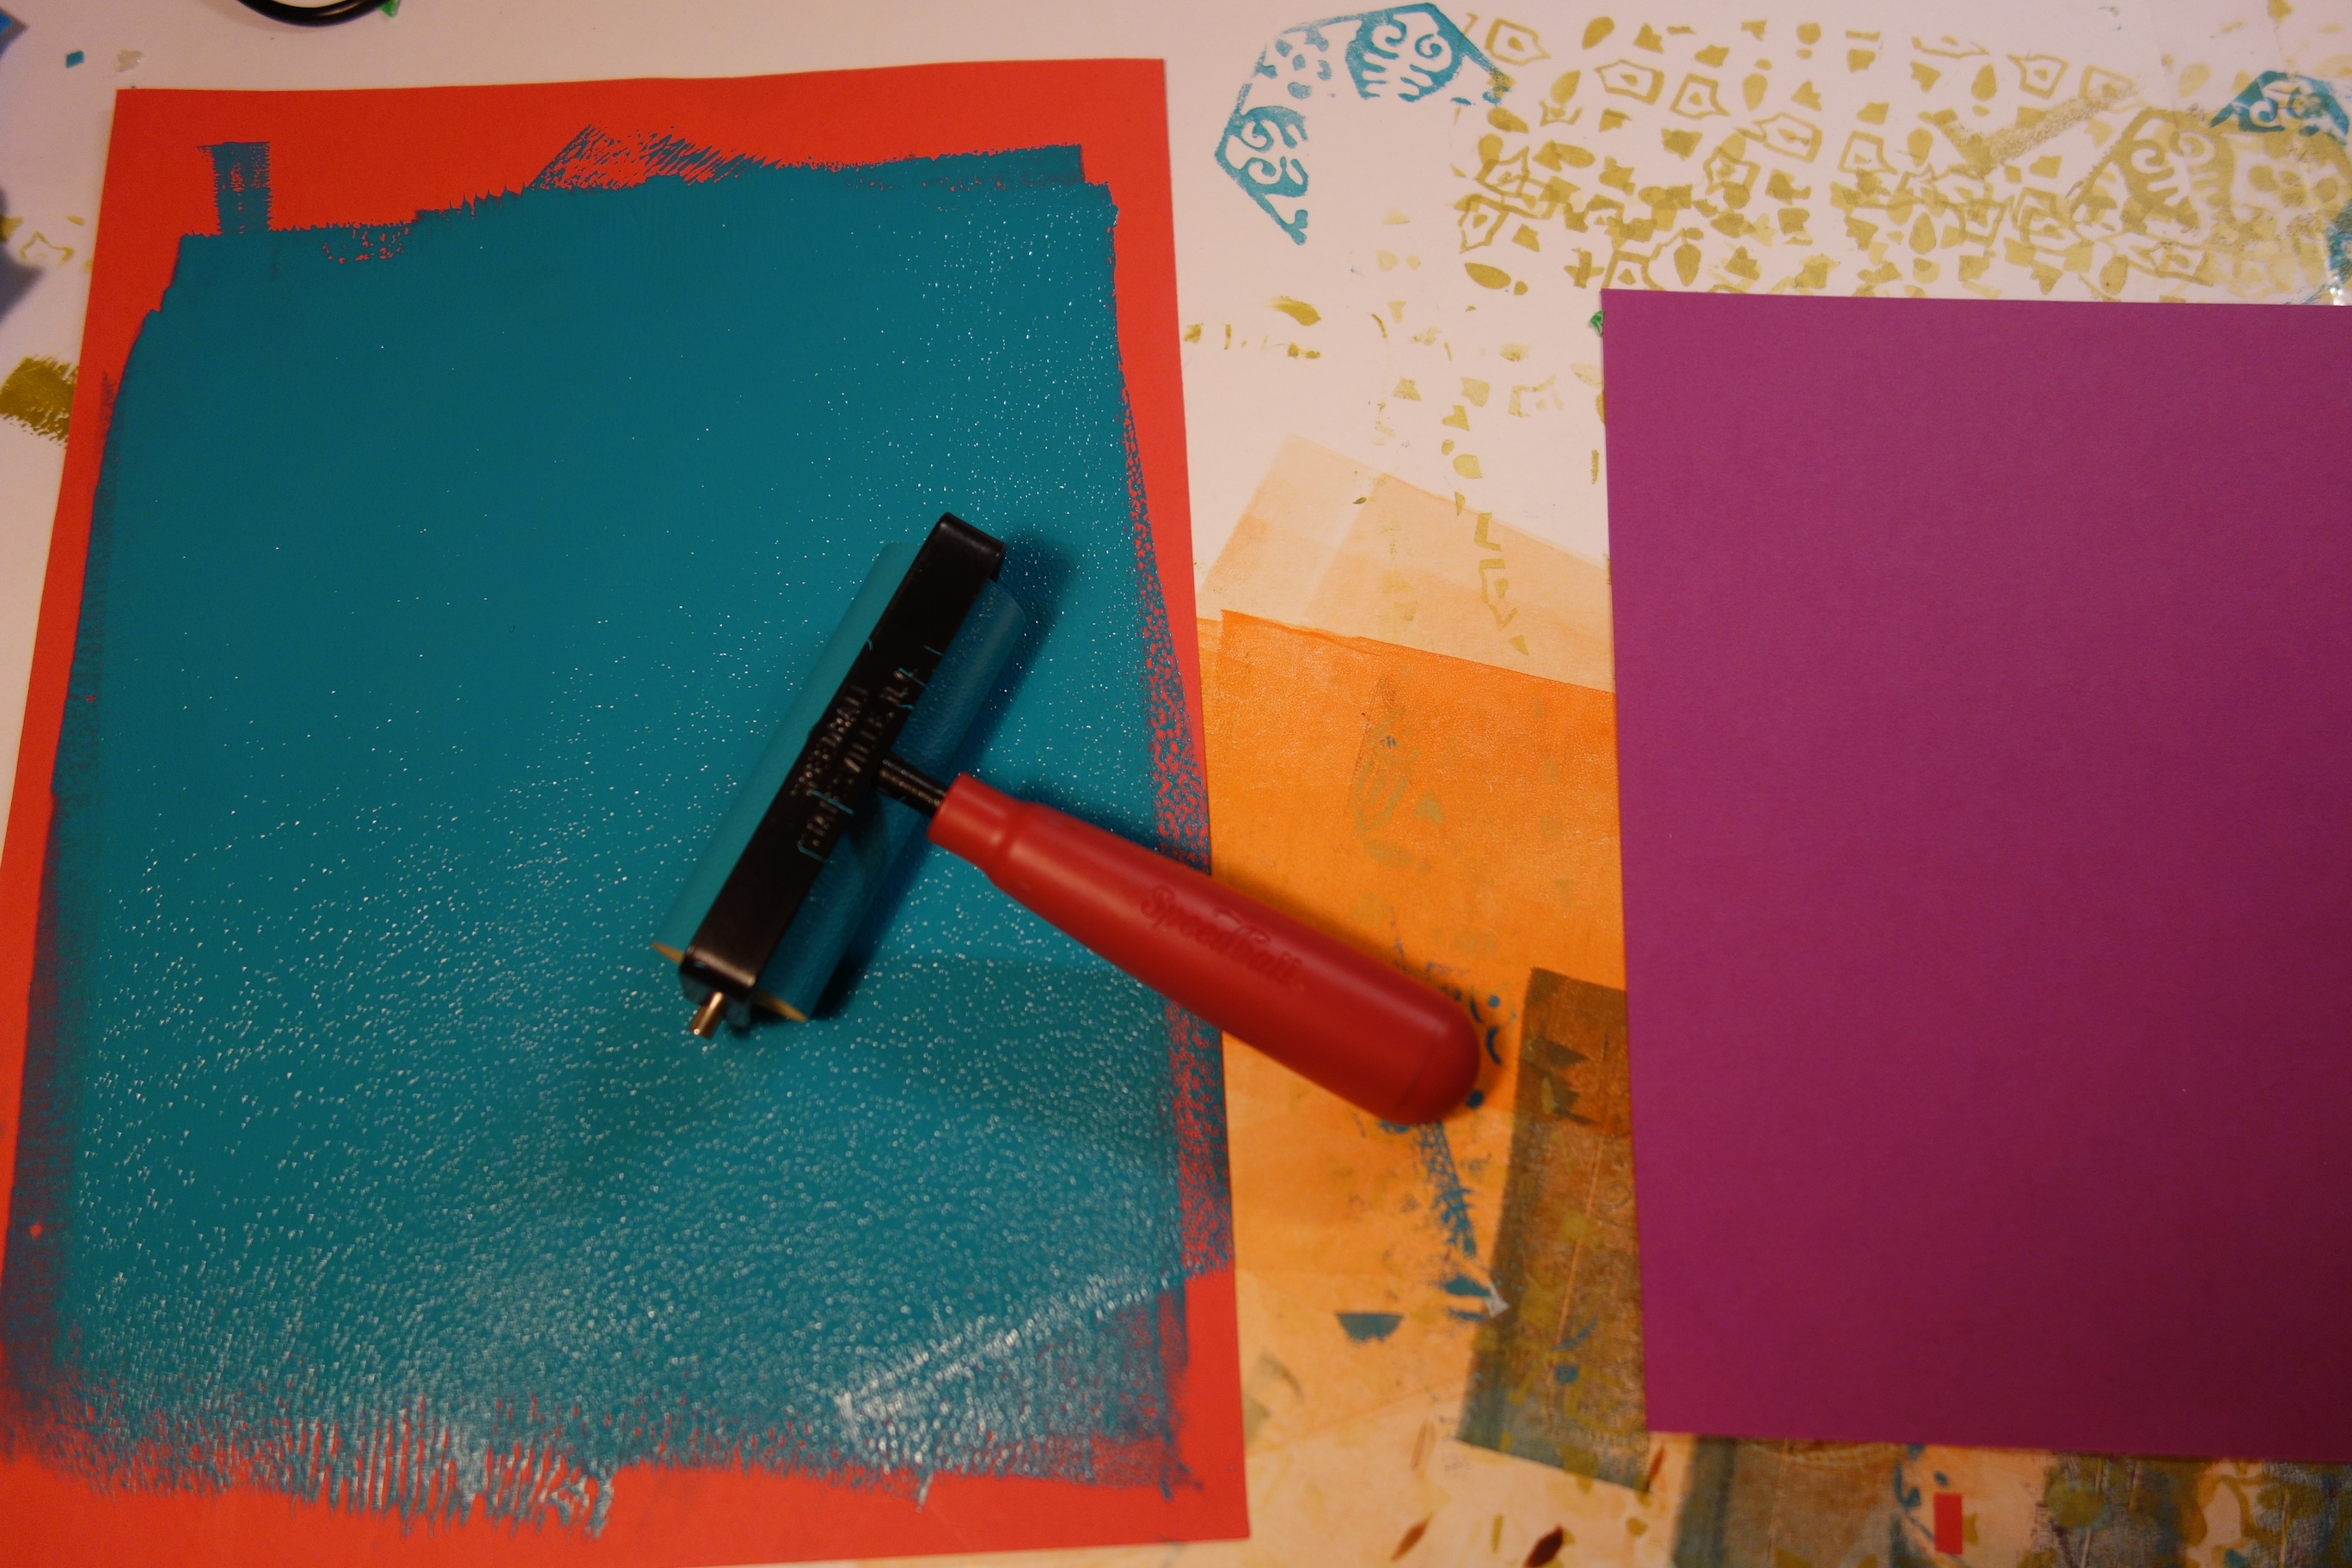 Tutorial: Block printing with a cutting plotter – Natalie Freed